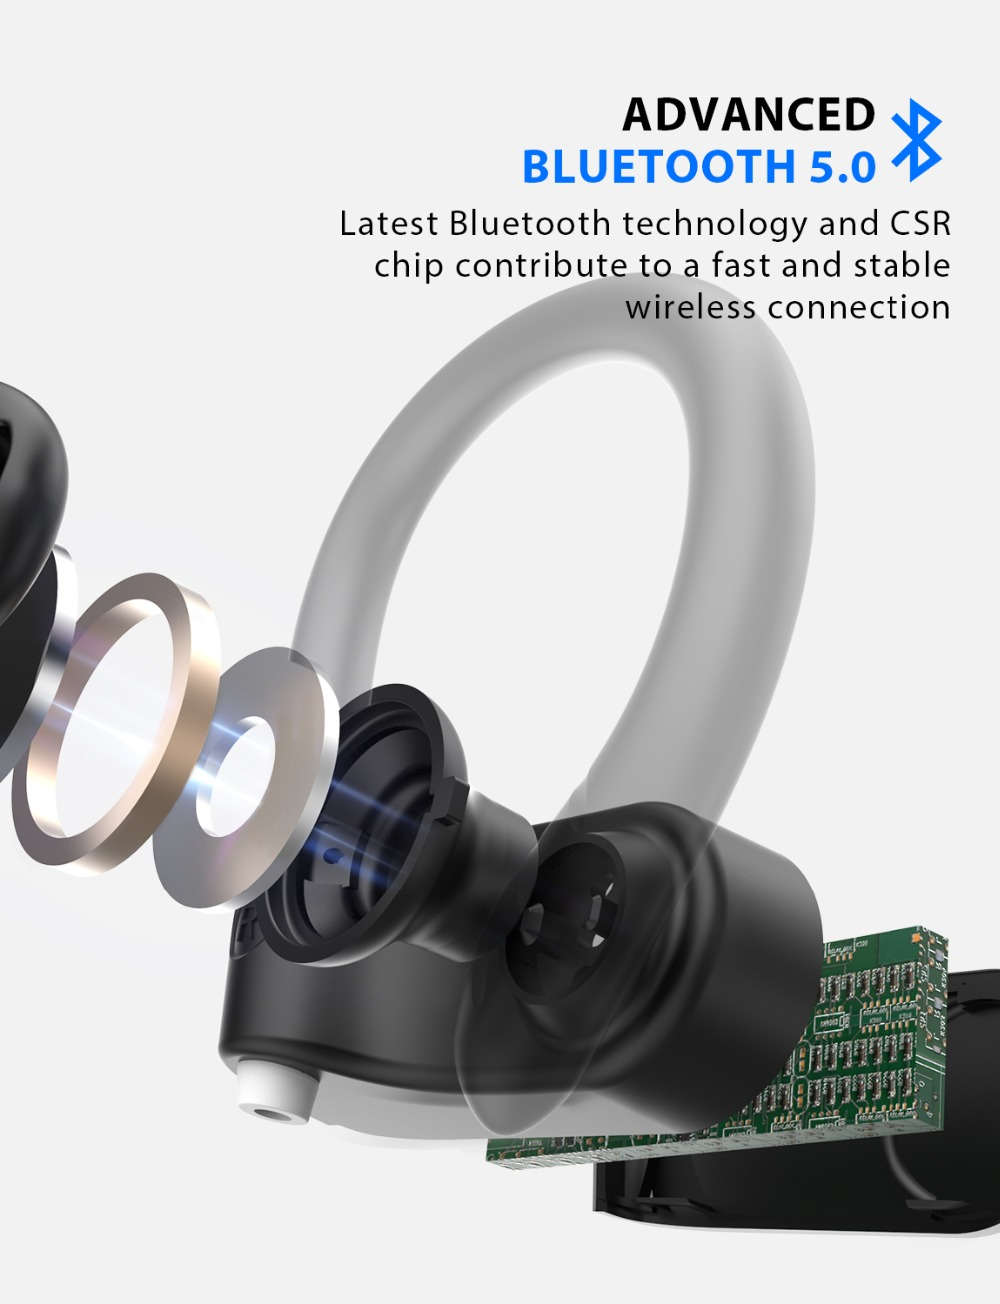 Mpow D9 Bluetooth 5.0 Earphone Aptx Wireless Sport Headphone With IPX7 Waterproof Noise Cancelling Mic 18H Playtime For Running (3)